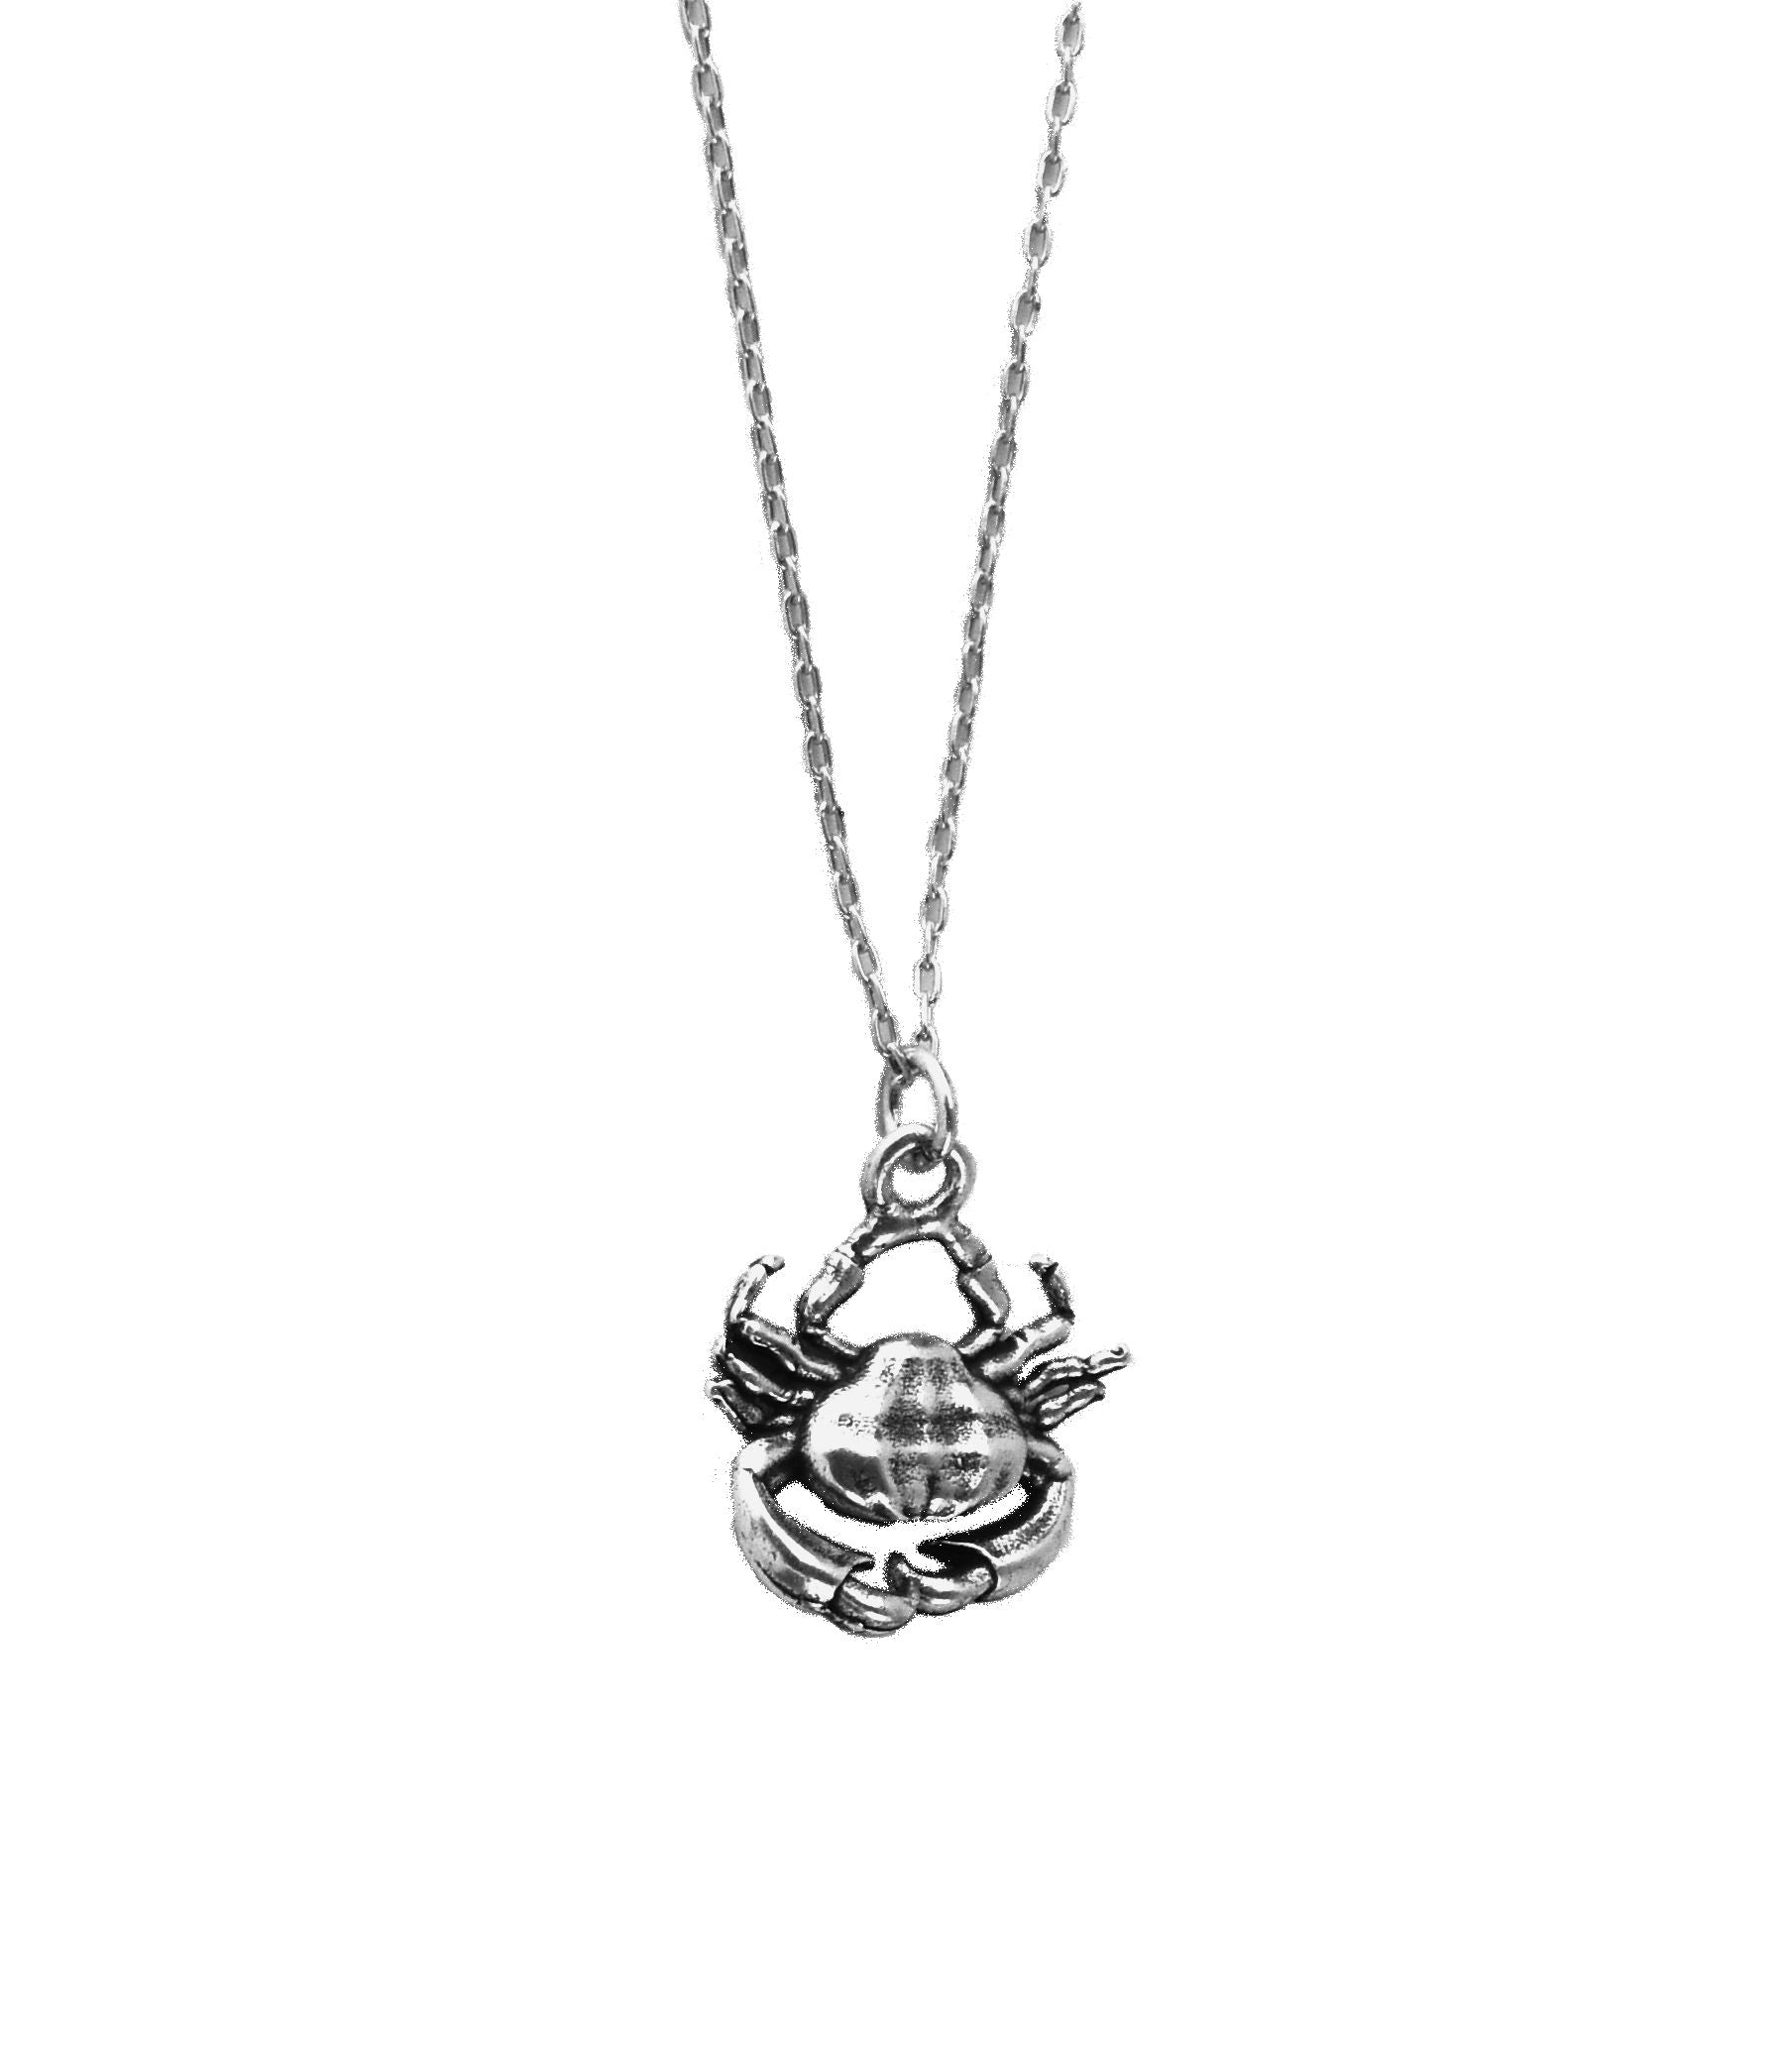 Small Crab Necklace Silver